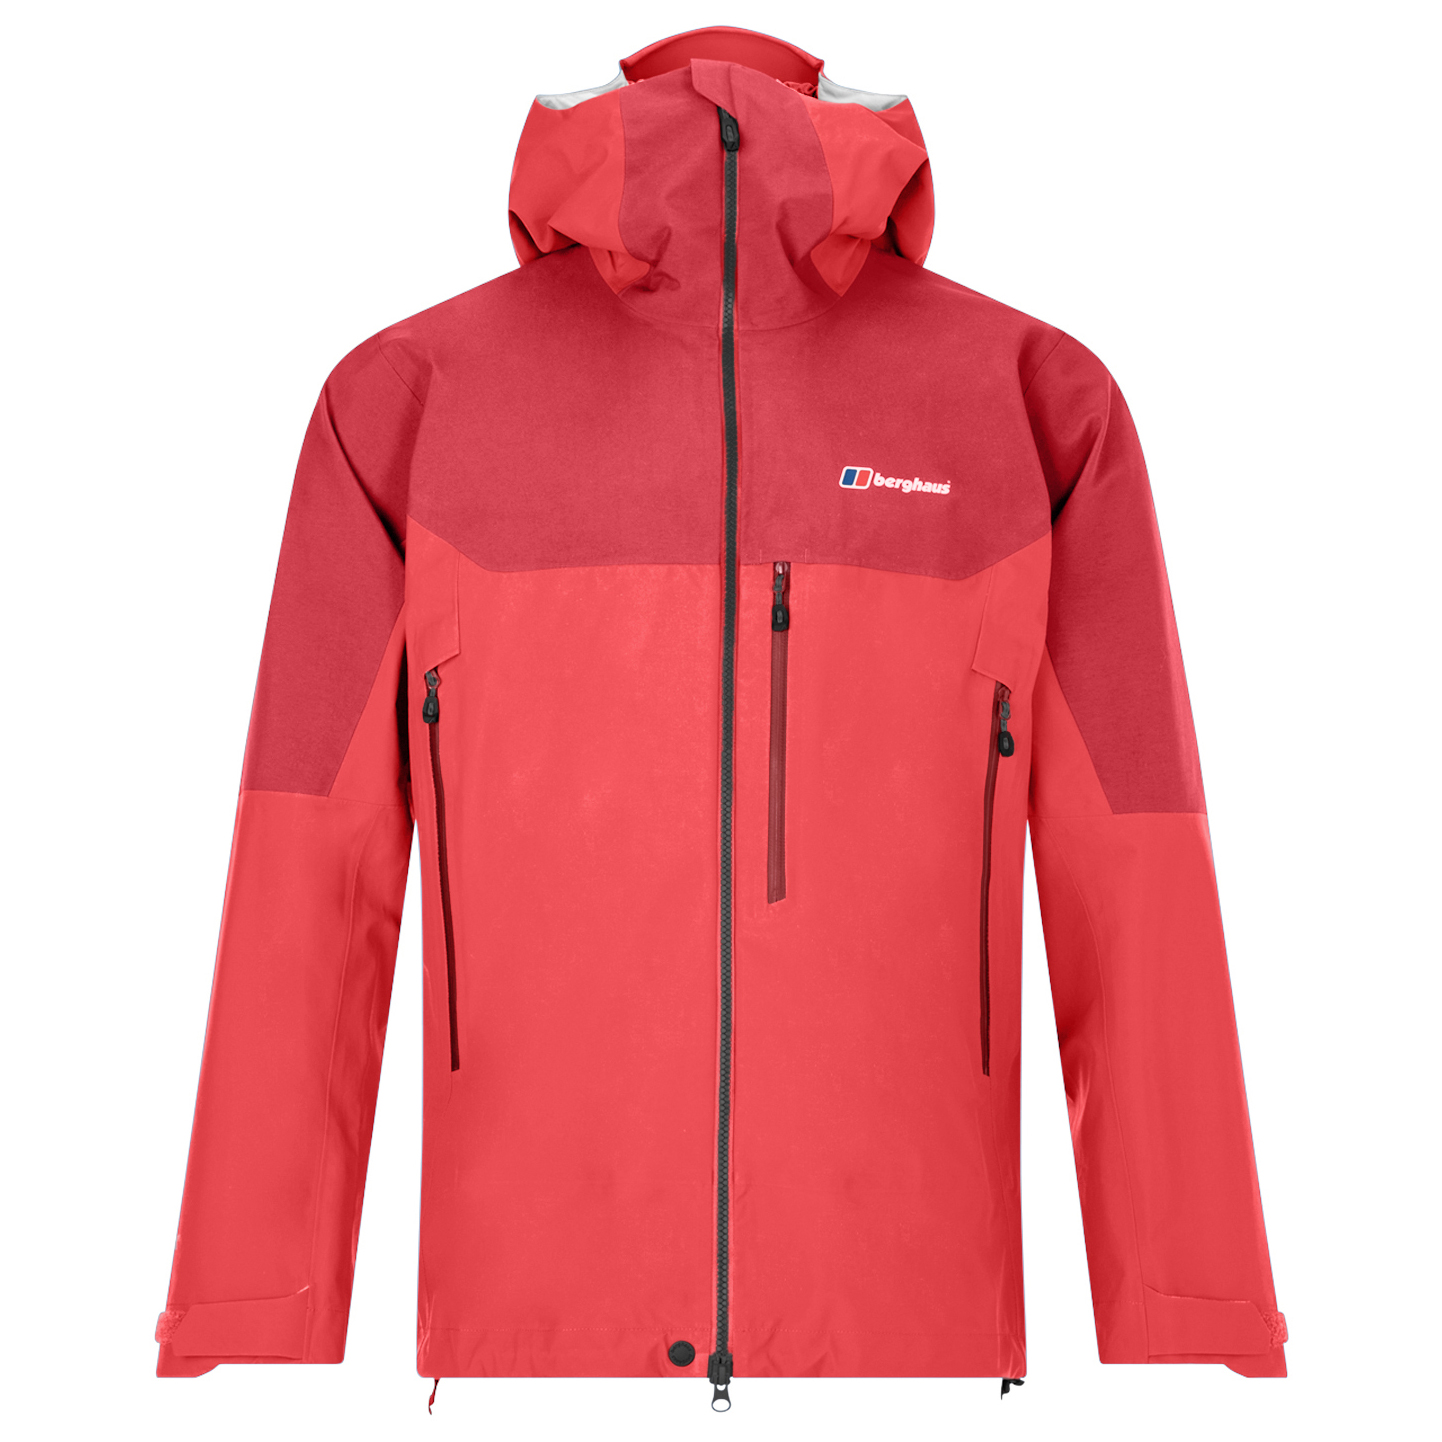 outlet store d28dc f5606 Berghaus - Extrem 5000 PZ Shell Jacket - Waterproof jacket - Flame / Haute  Red | S